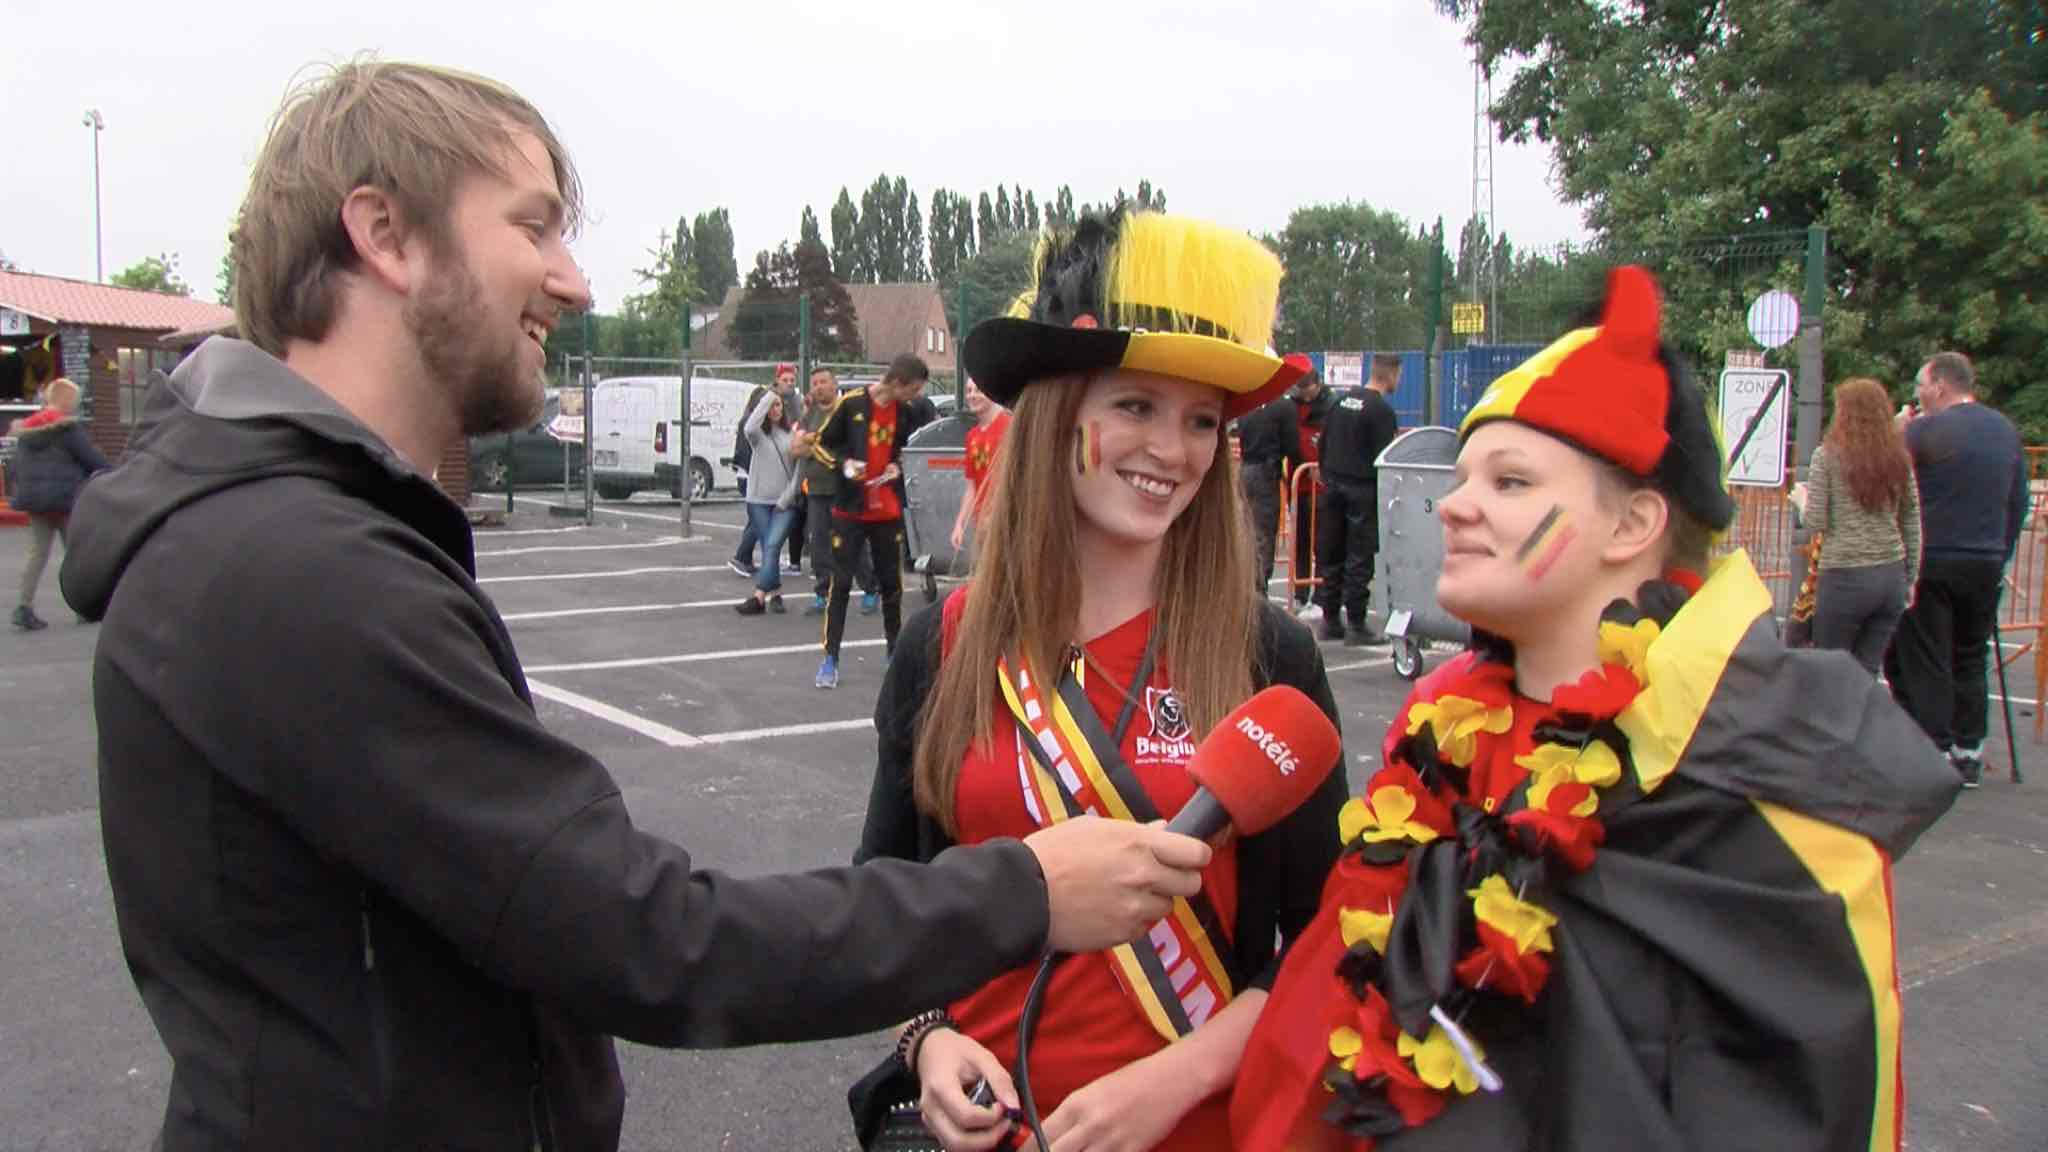 France-Belgique : ambiance à la fan zone de Mouscron